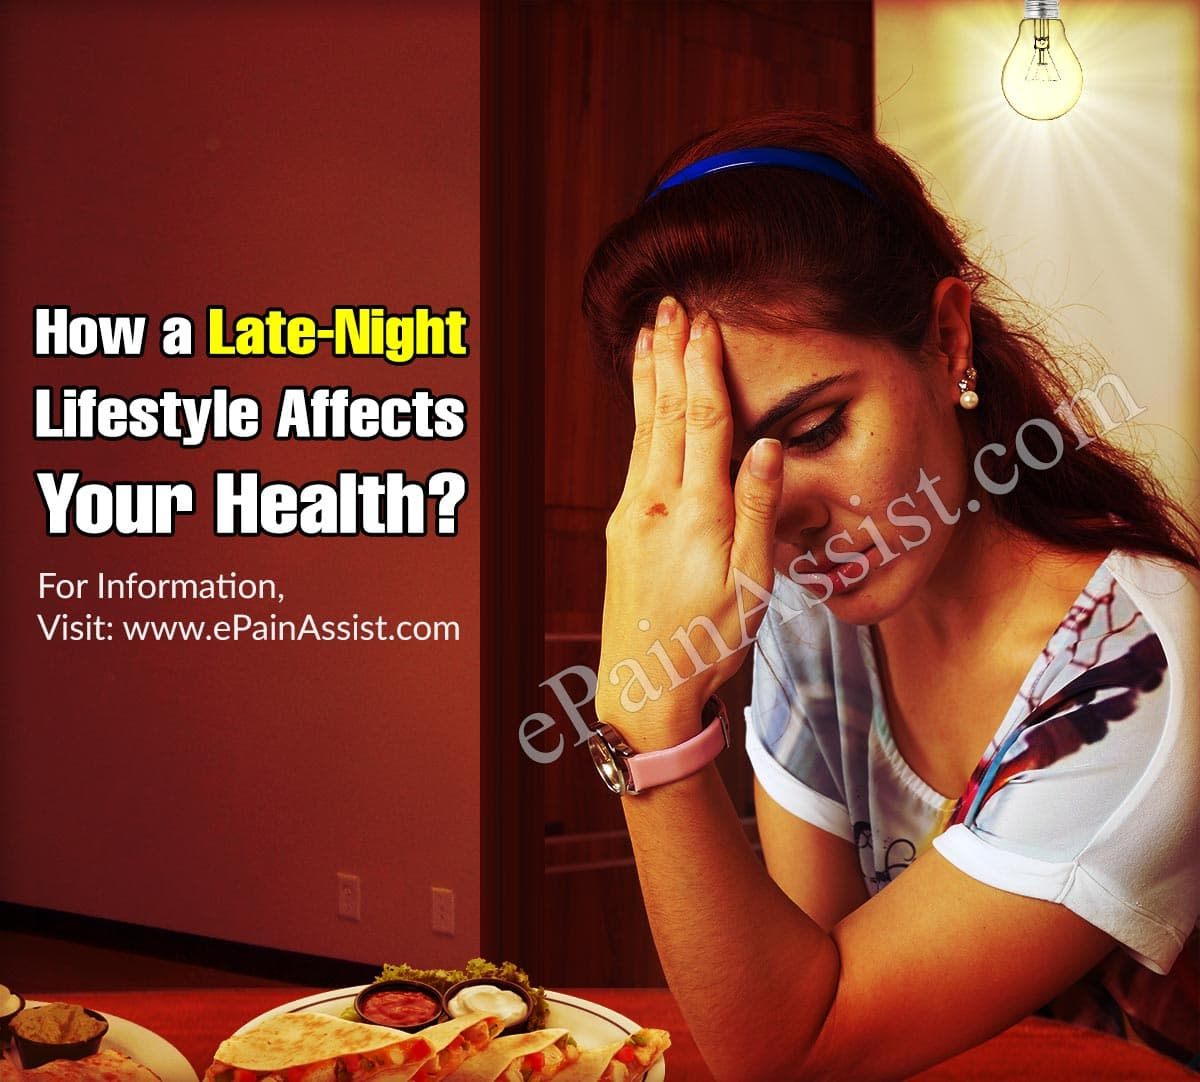 How a Late-Night Lifestyle Affects Your Health?